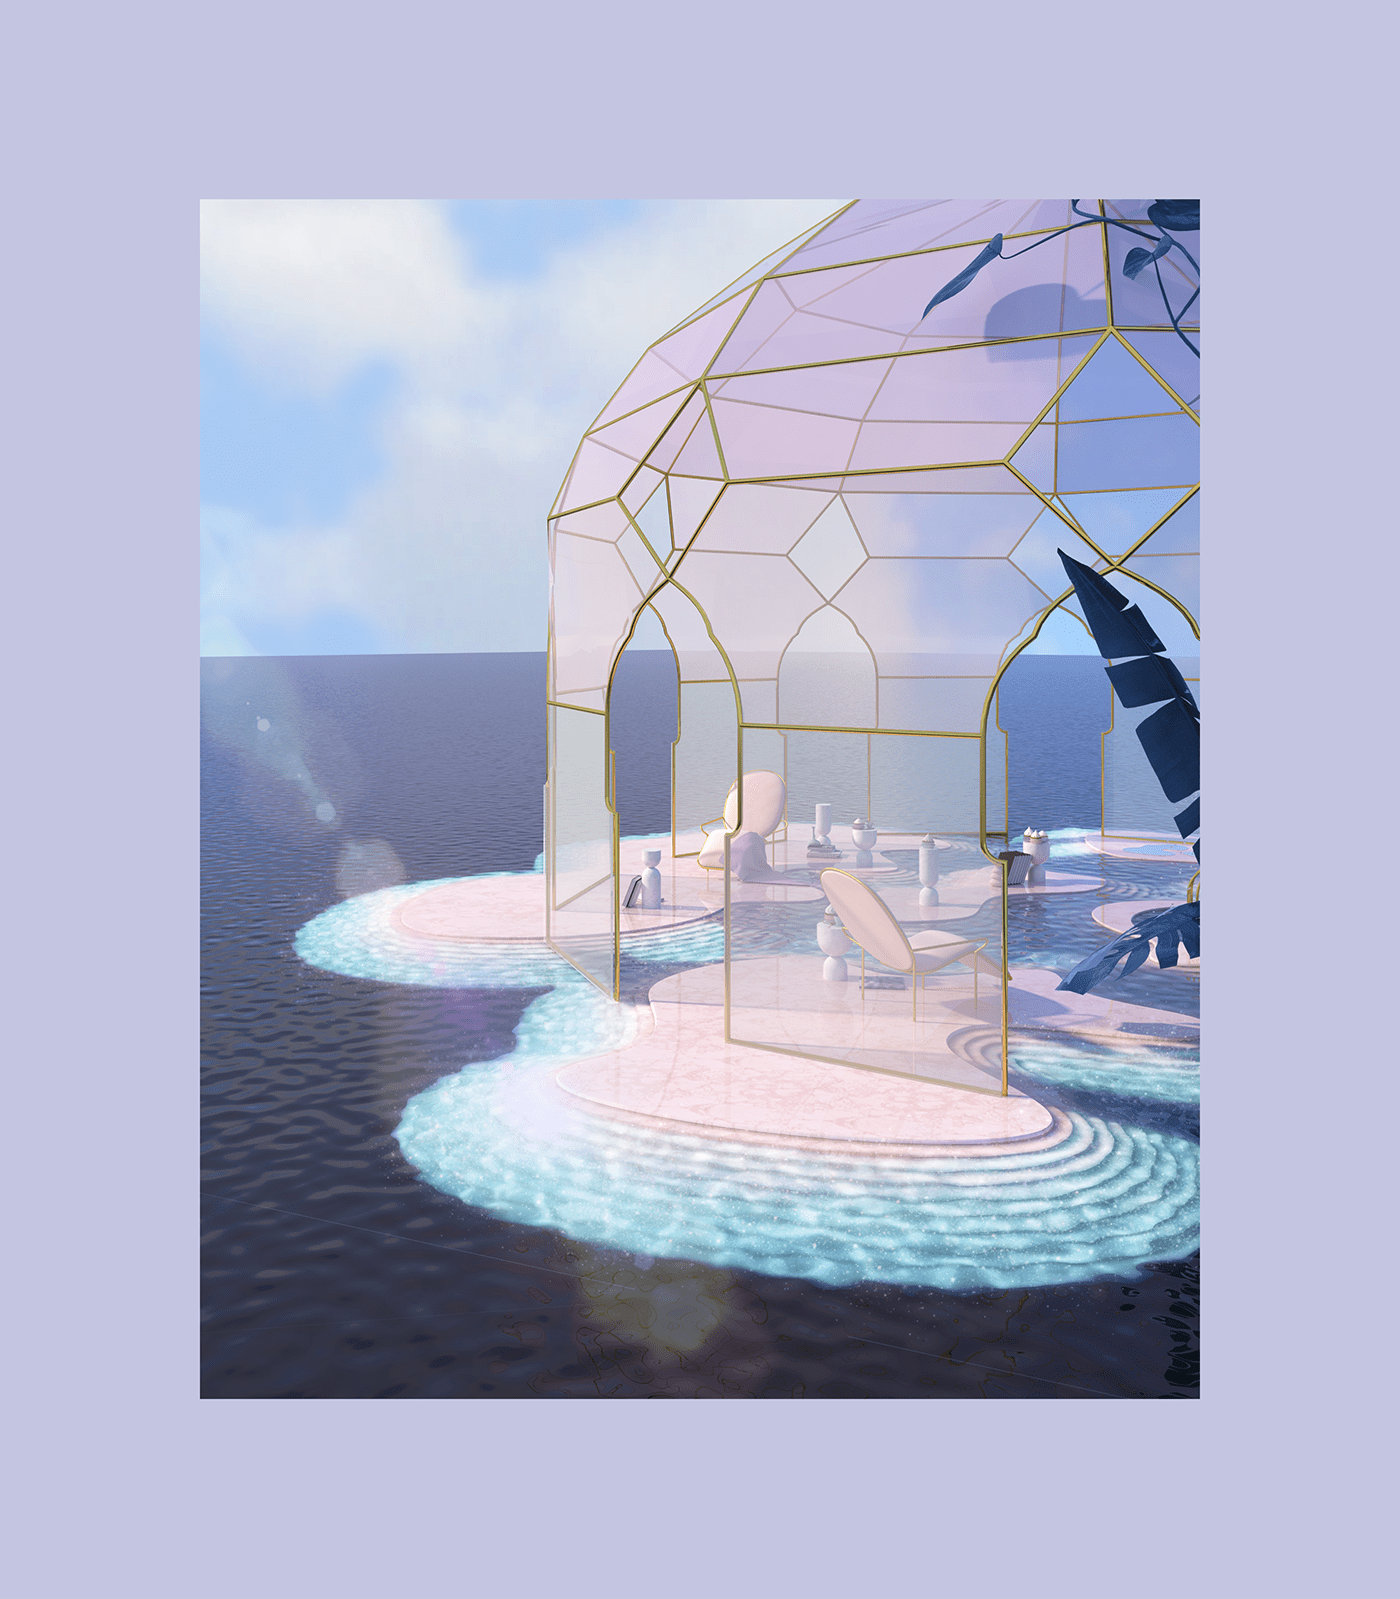 3DDesign architecture archs ethereal interiordesign pastel Render sunroom surreal vray